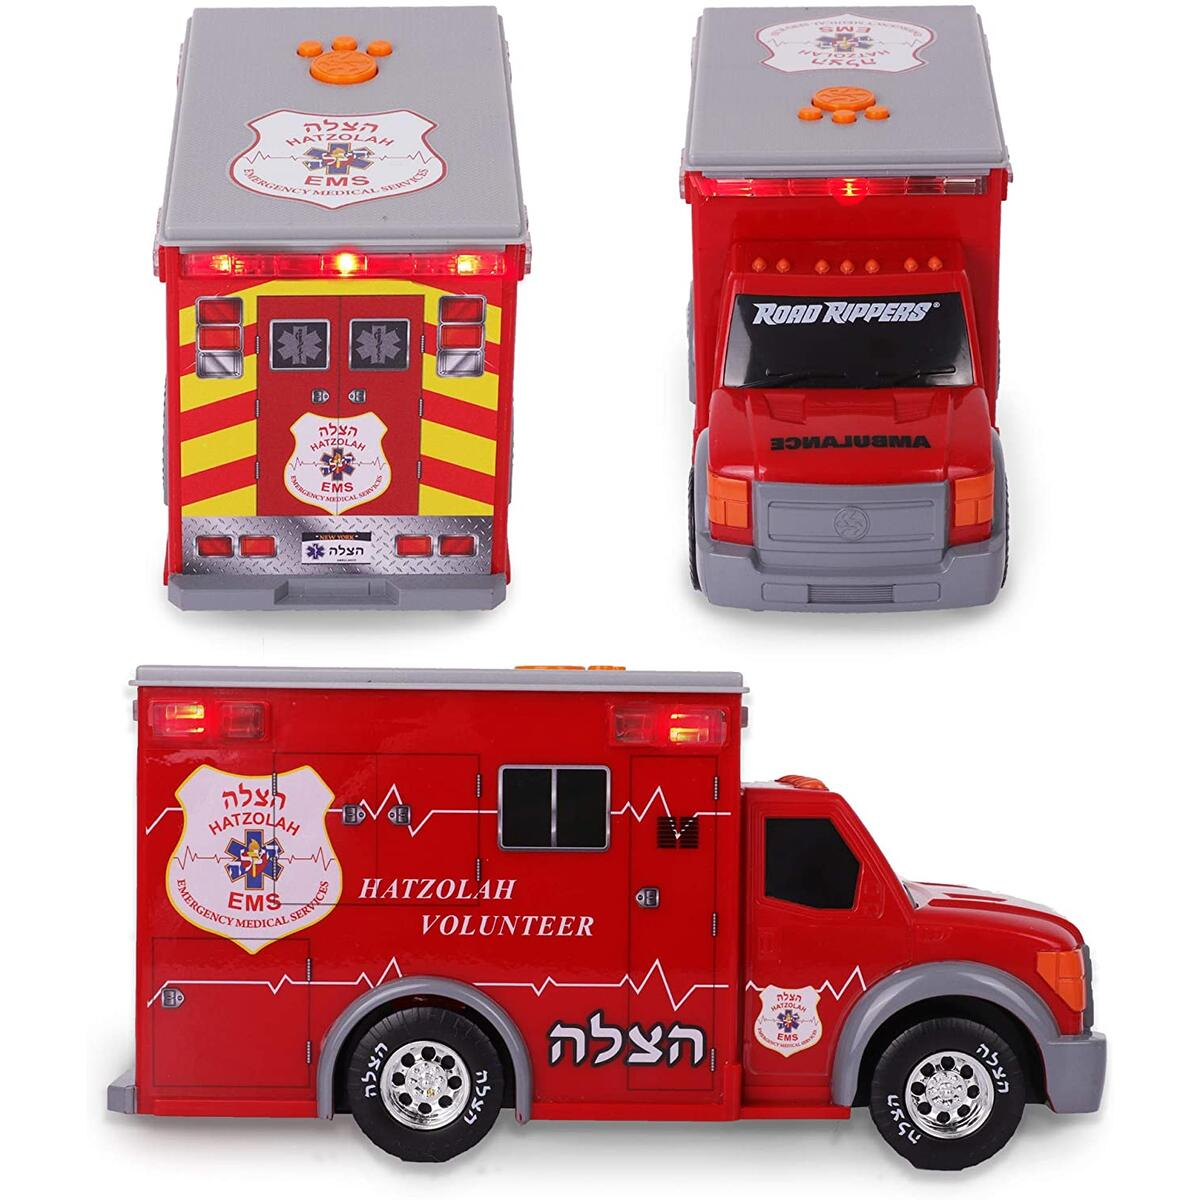 Hatzolah Volunteer EMS Ambulance, Emergency Motorized Toy Truck for Kids. Strong Quality Features Lights, Sirens, and Much More!